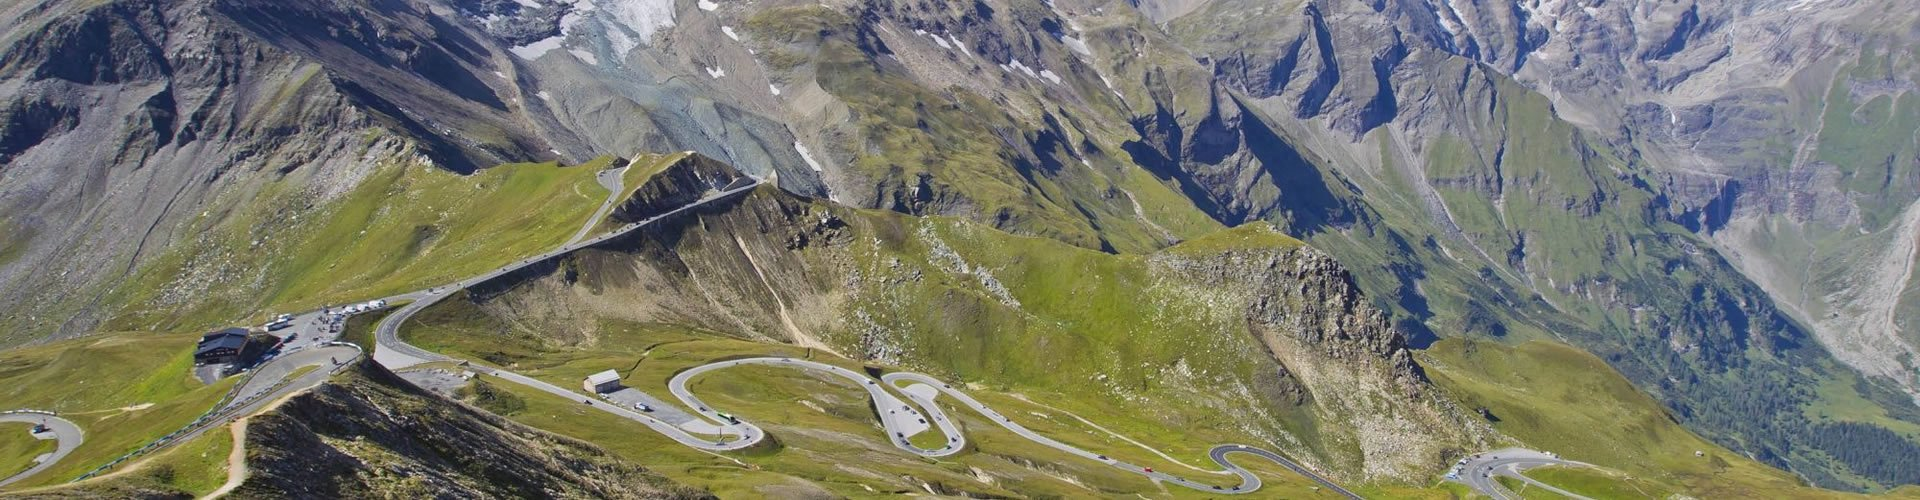 Grossglockner bike ride cycle tour supported